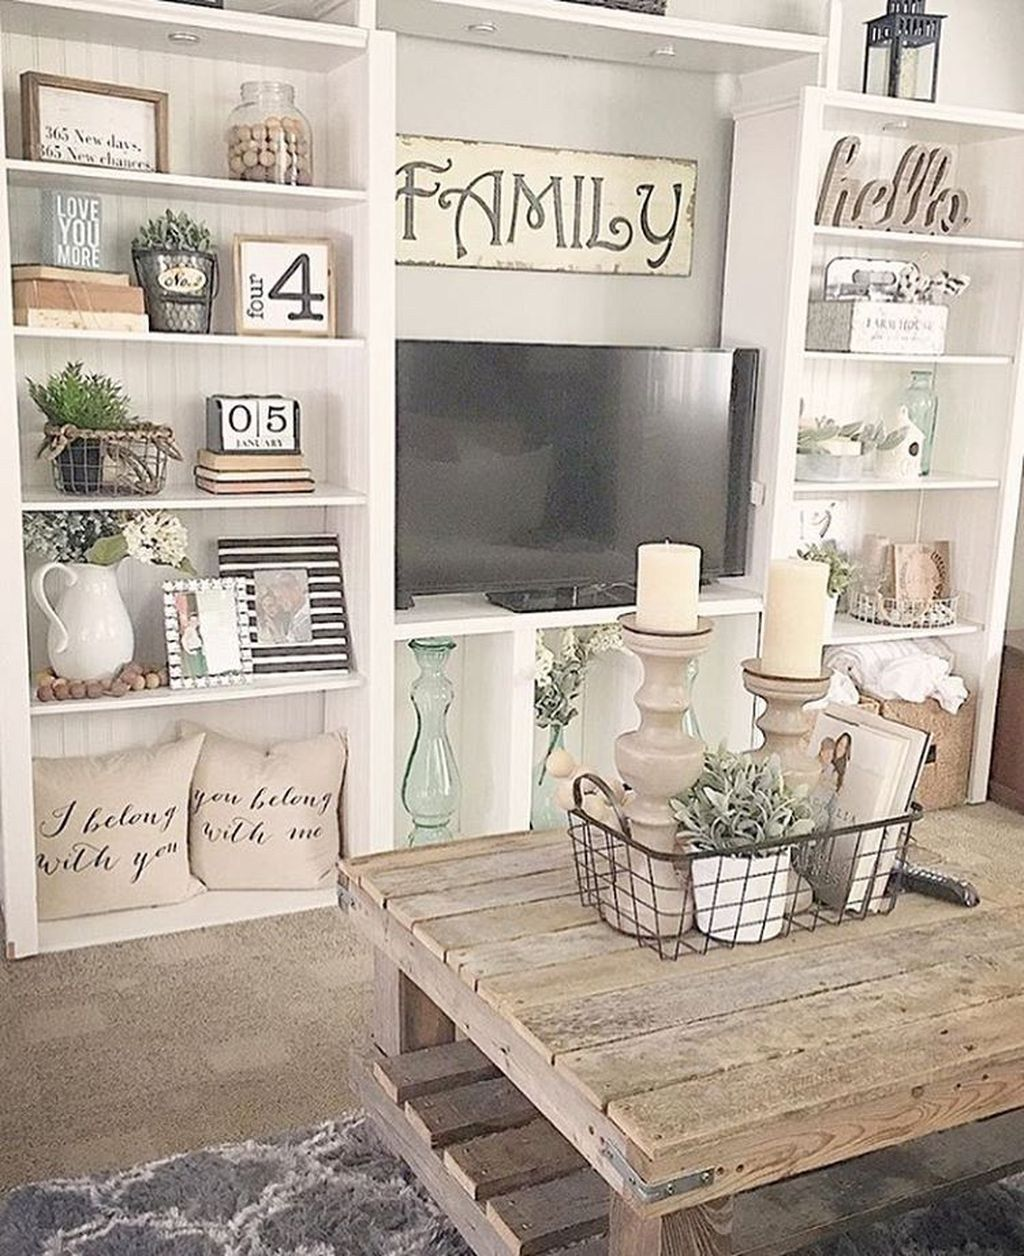 46 The Best Living Room Decoration Ideas With Rustic Farmhouse Style Trendehouse Farmhouse Decor Living Room Farm House Living Room Shelf Decor Living Room